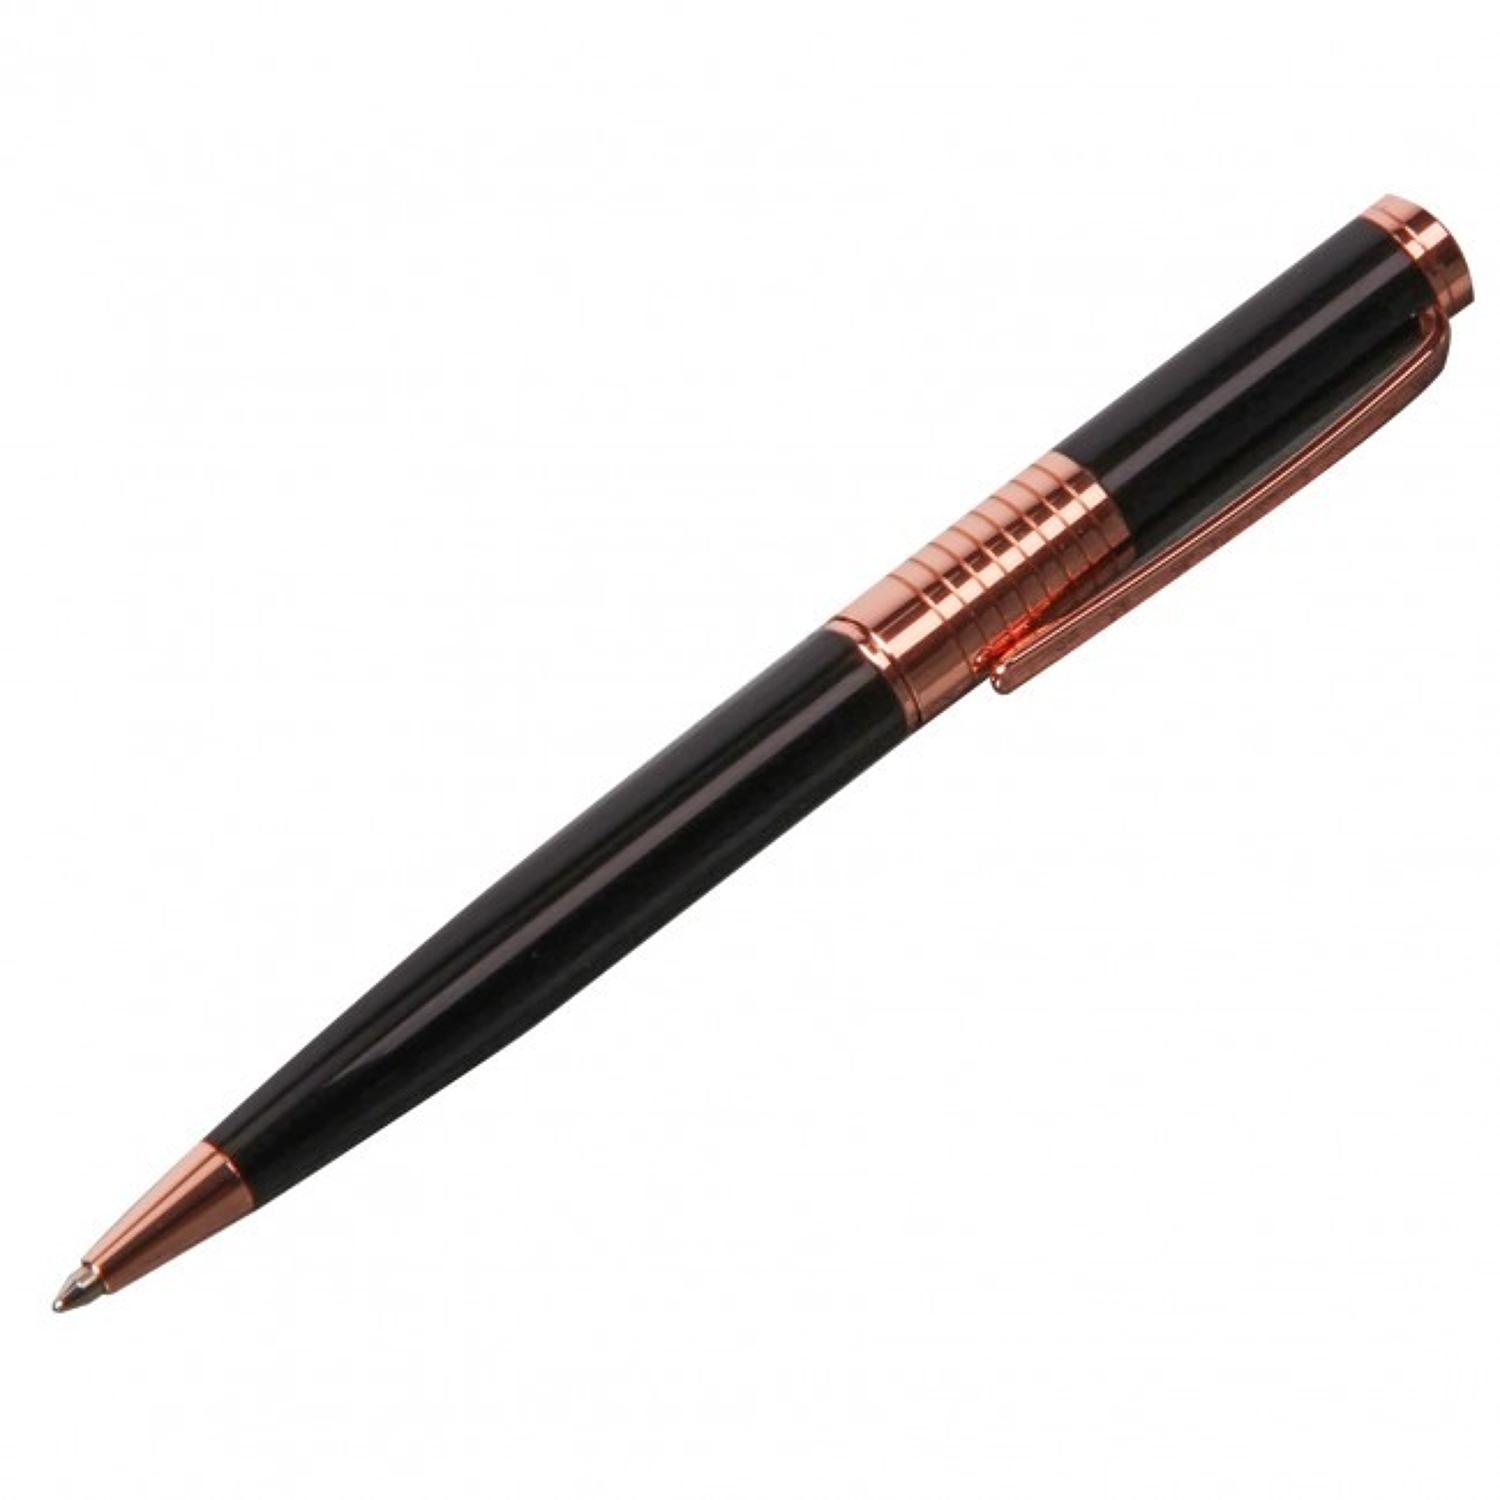 Stratton boxed ball point pen - Black & rose gold